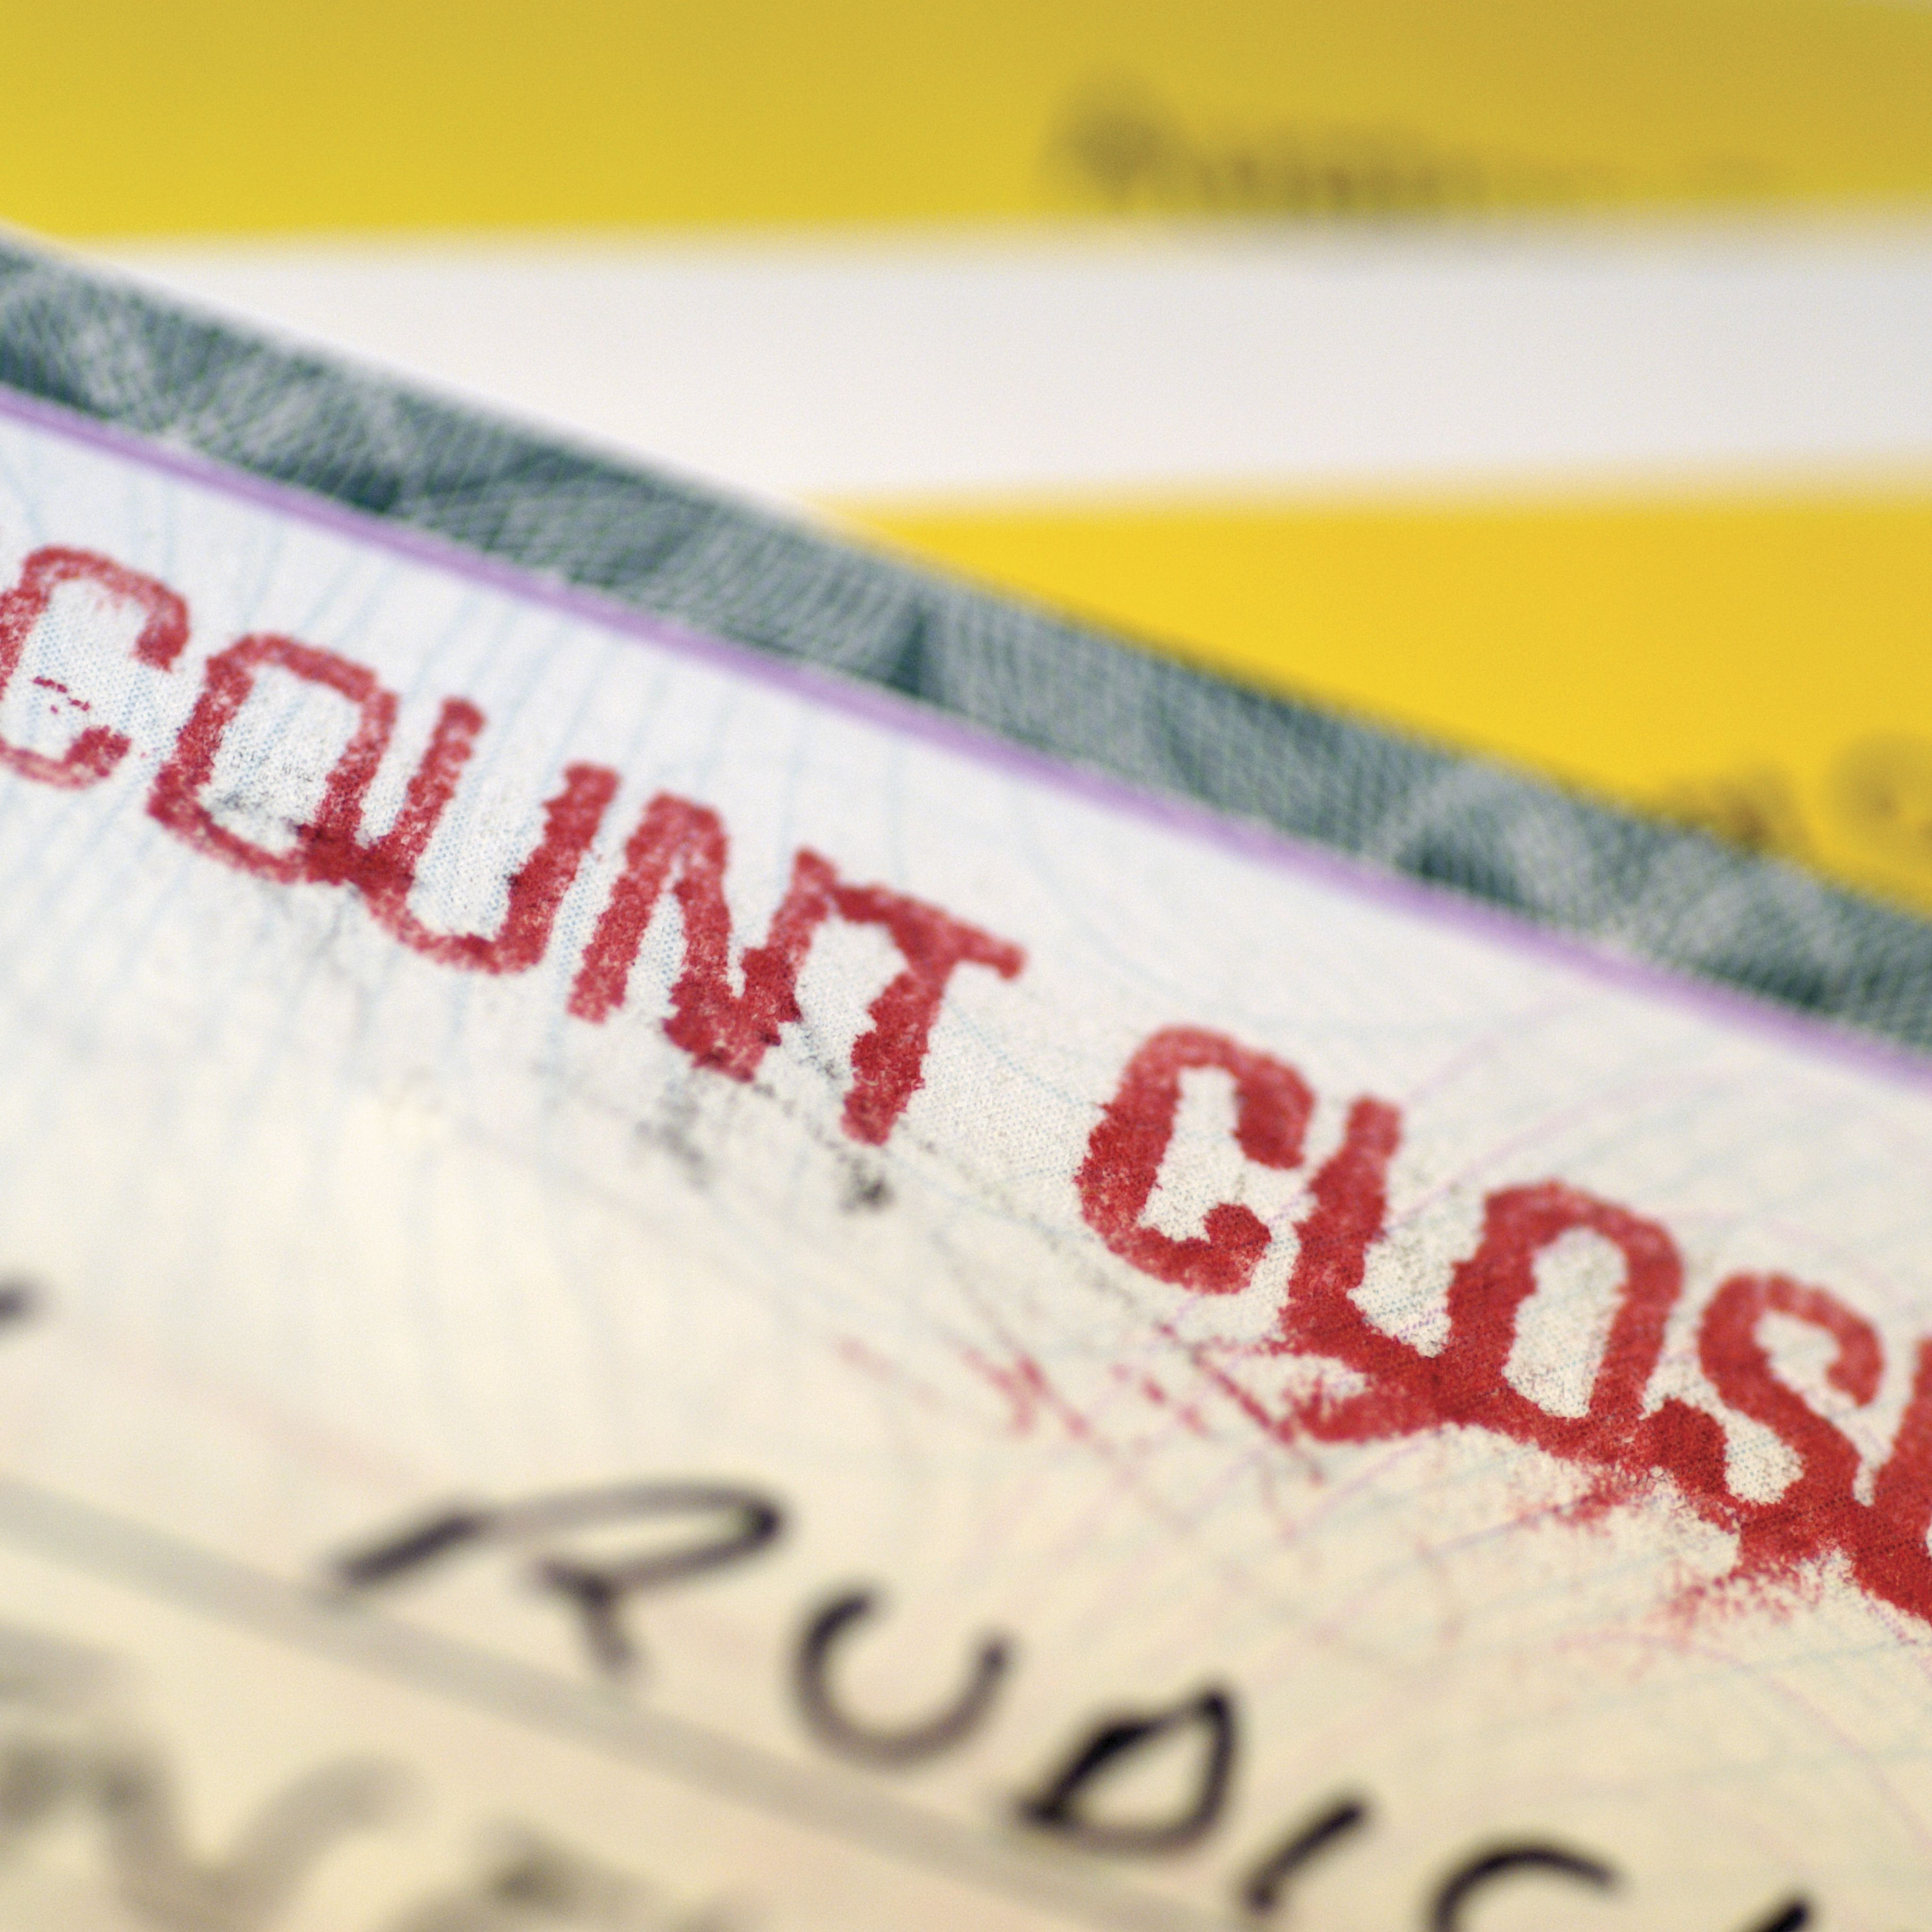 What to Do About Returned Checks